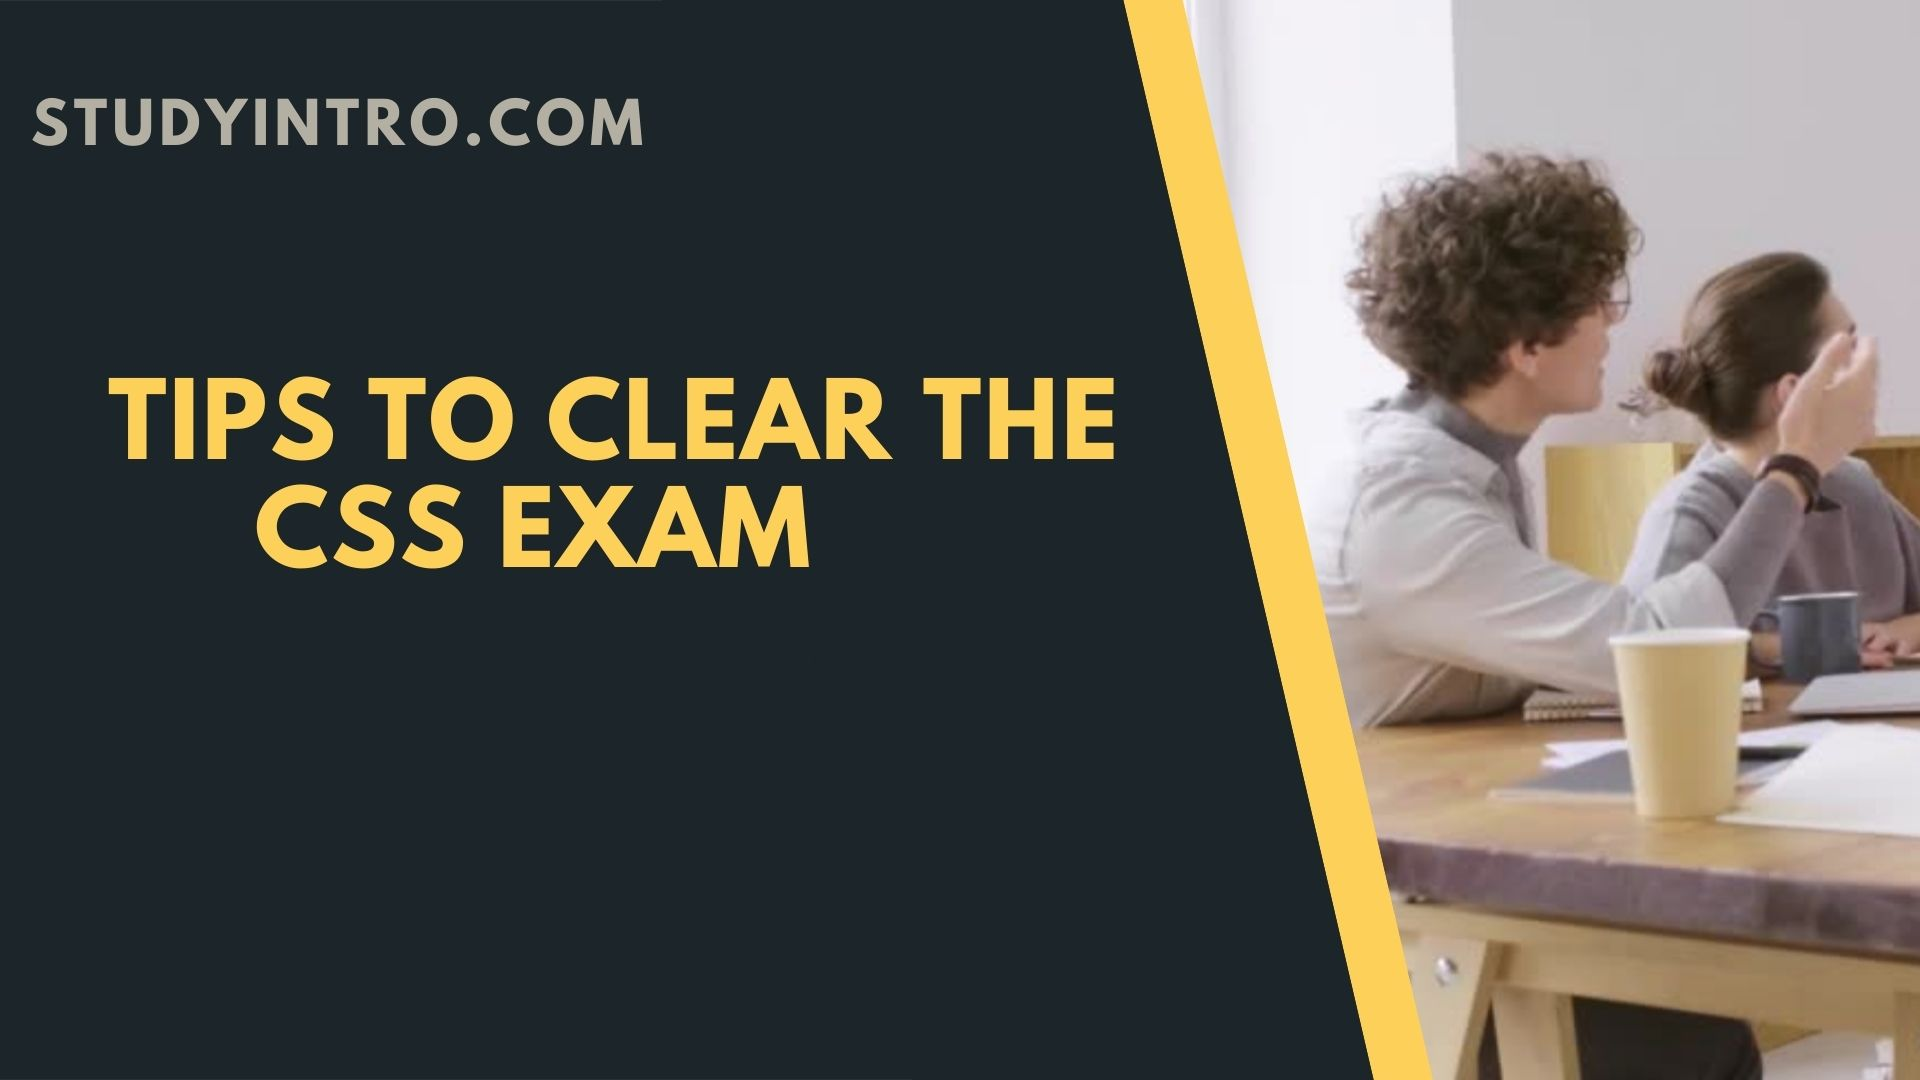 Tips to clear the CSS exam